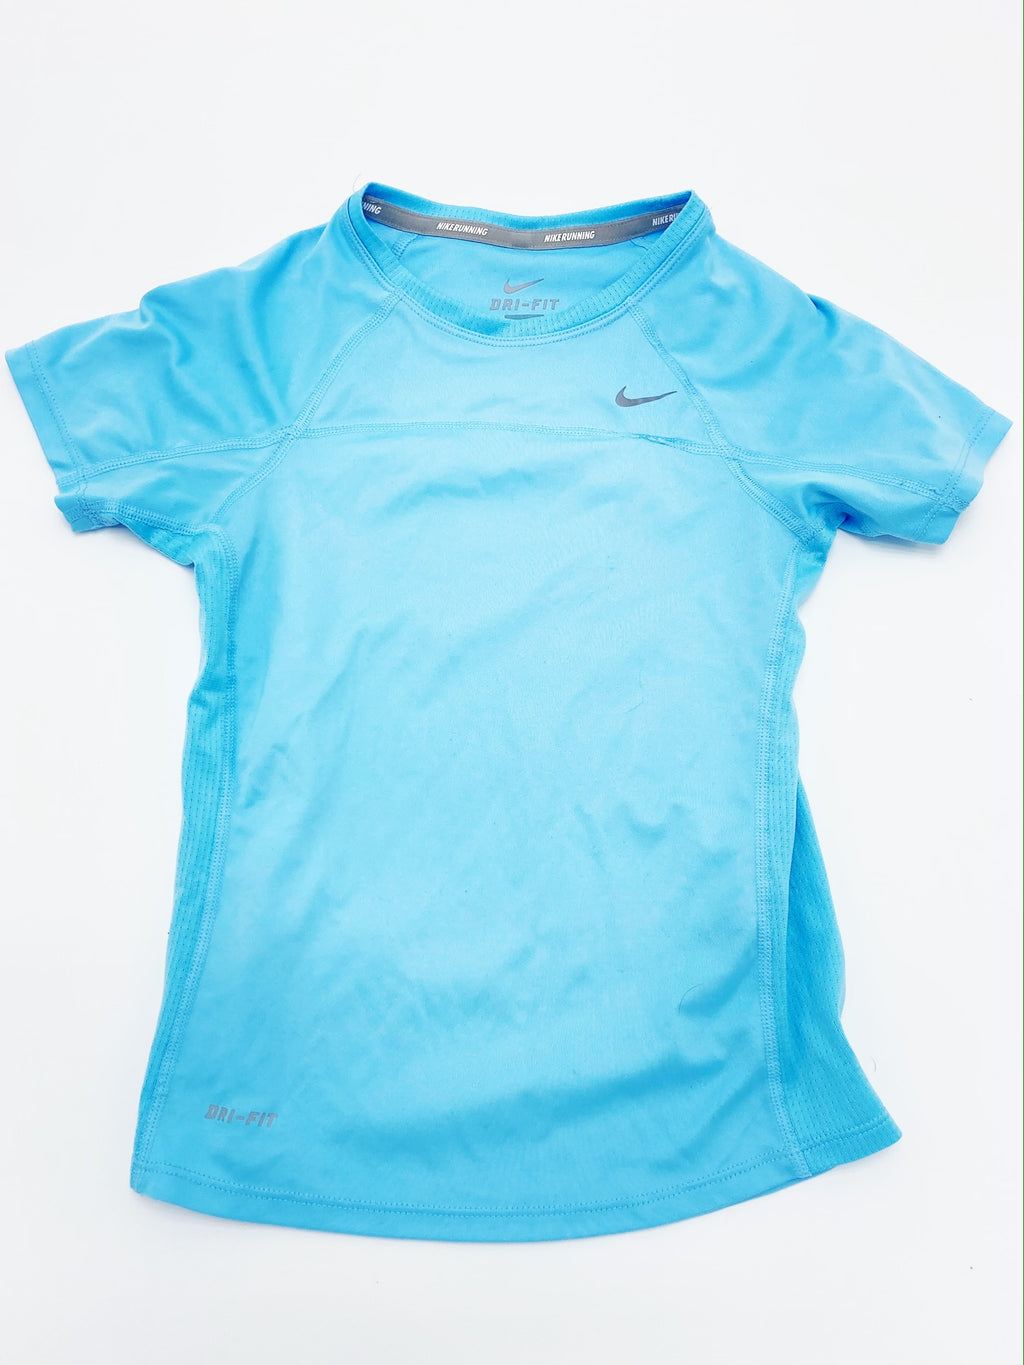 Nike dry-fit t-shirt size small (6-7)